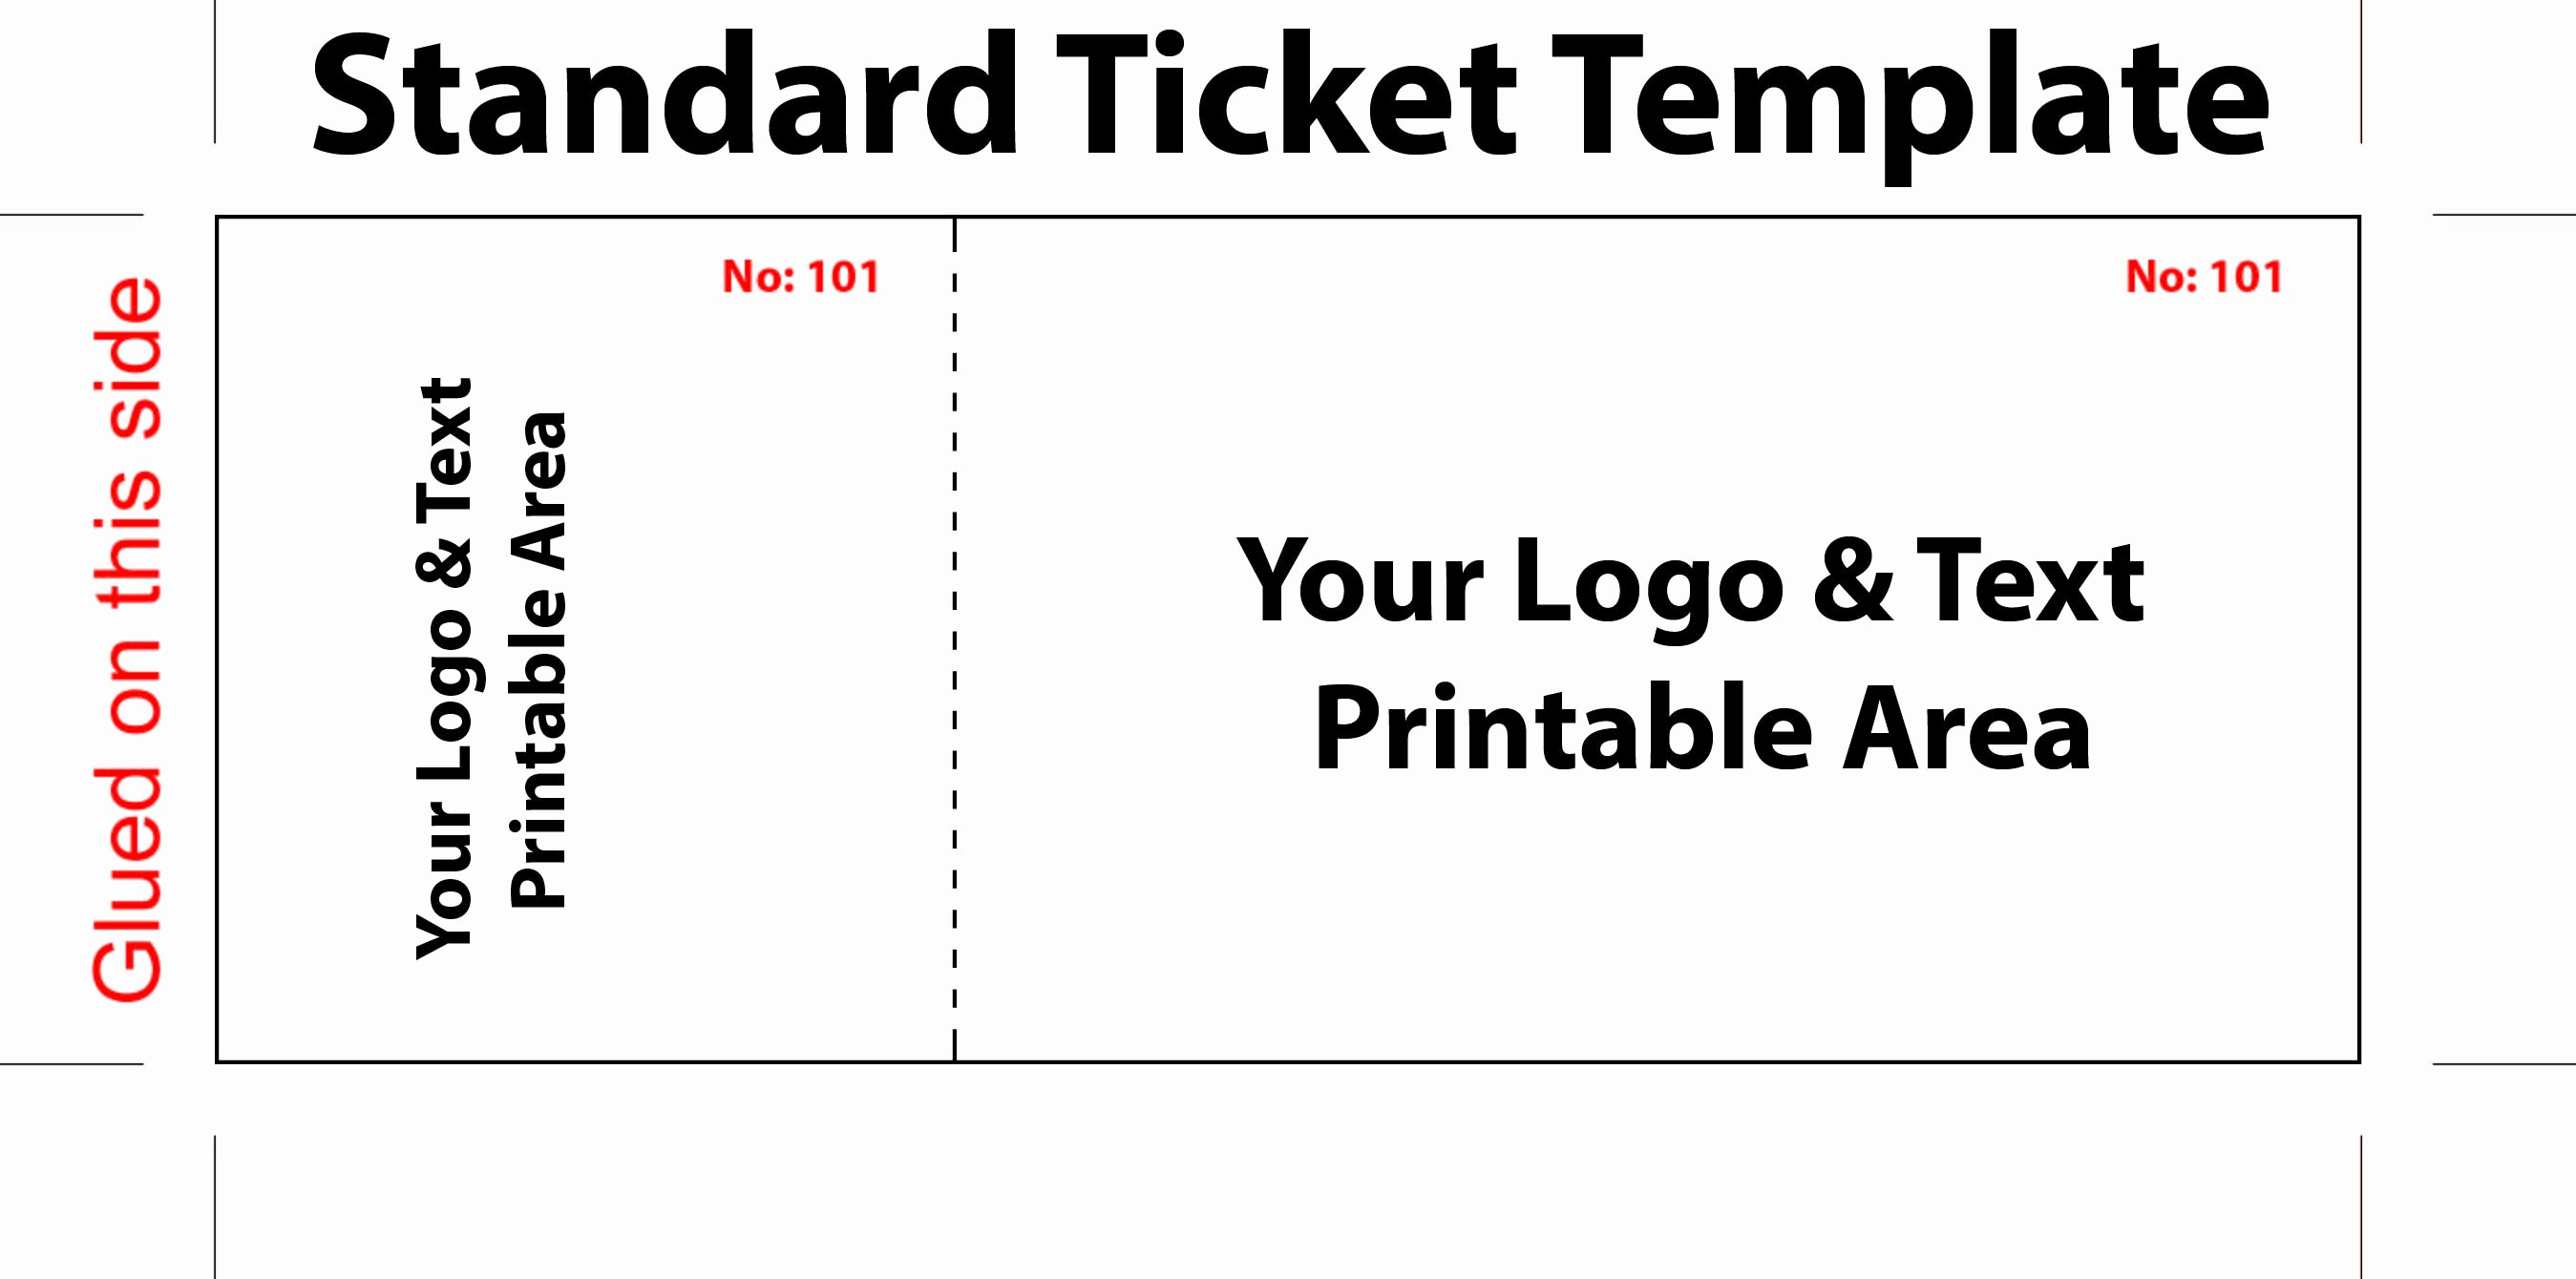 Event Ticket Template Word New Free Editable Standard Ticket Template Example for Concert